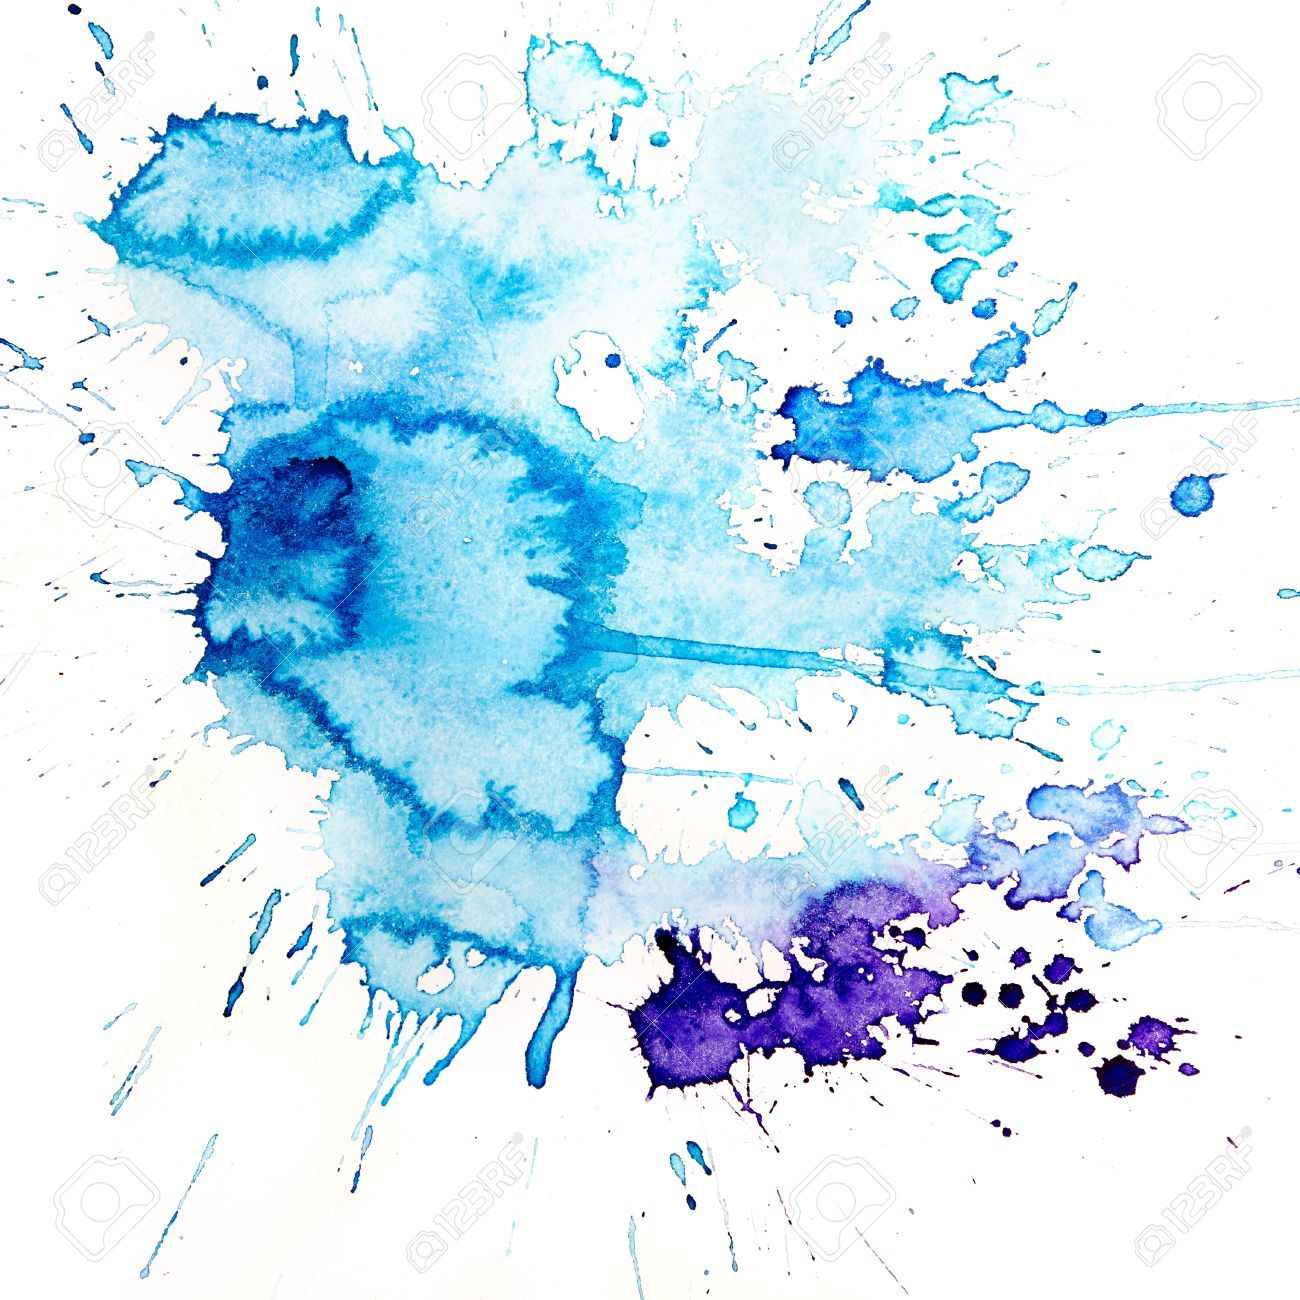 Stock Photo In 2020 Art Background Watercolor Art Art